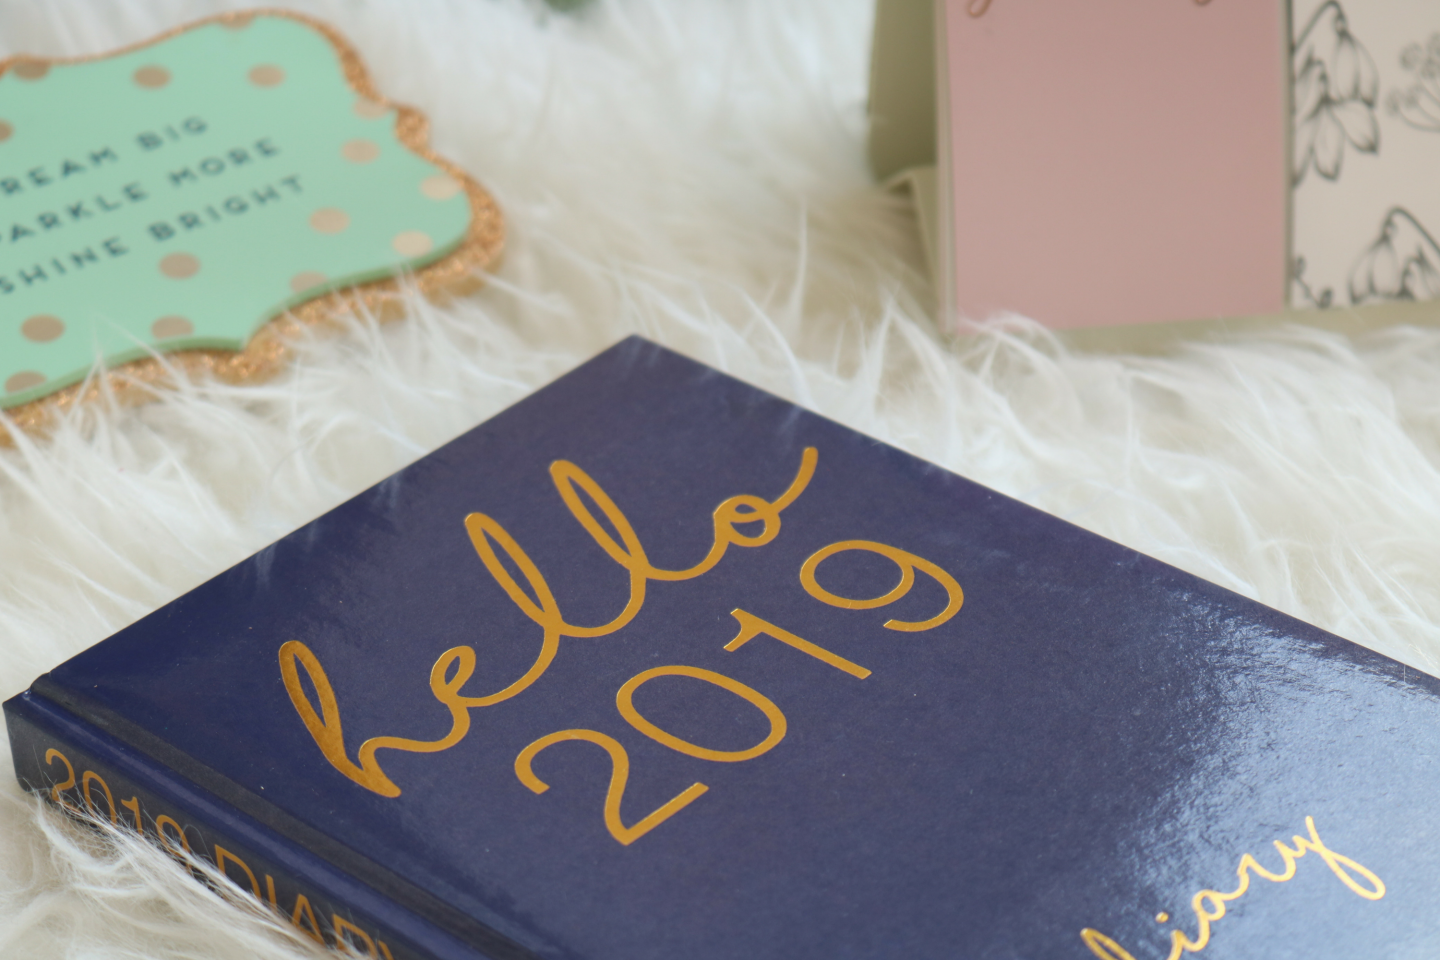 We are now officially at the end of the first full week of February, and what a week it's been! Here are the five things that I've been reminded of already in 2019.